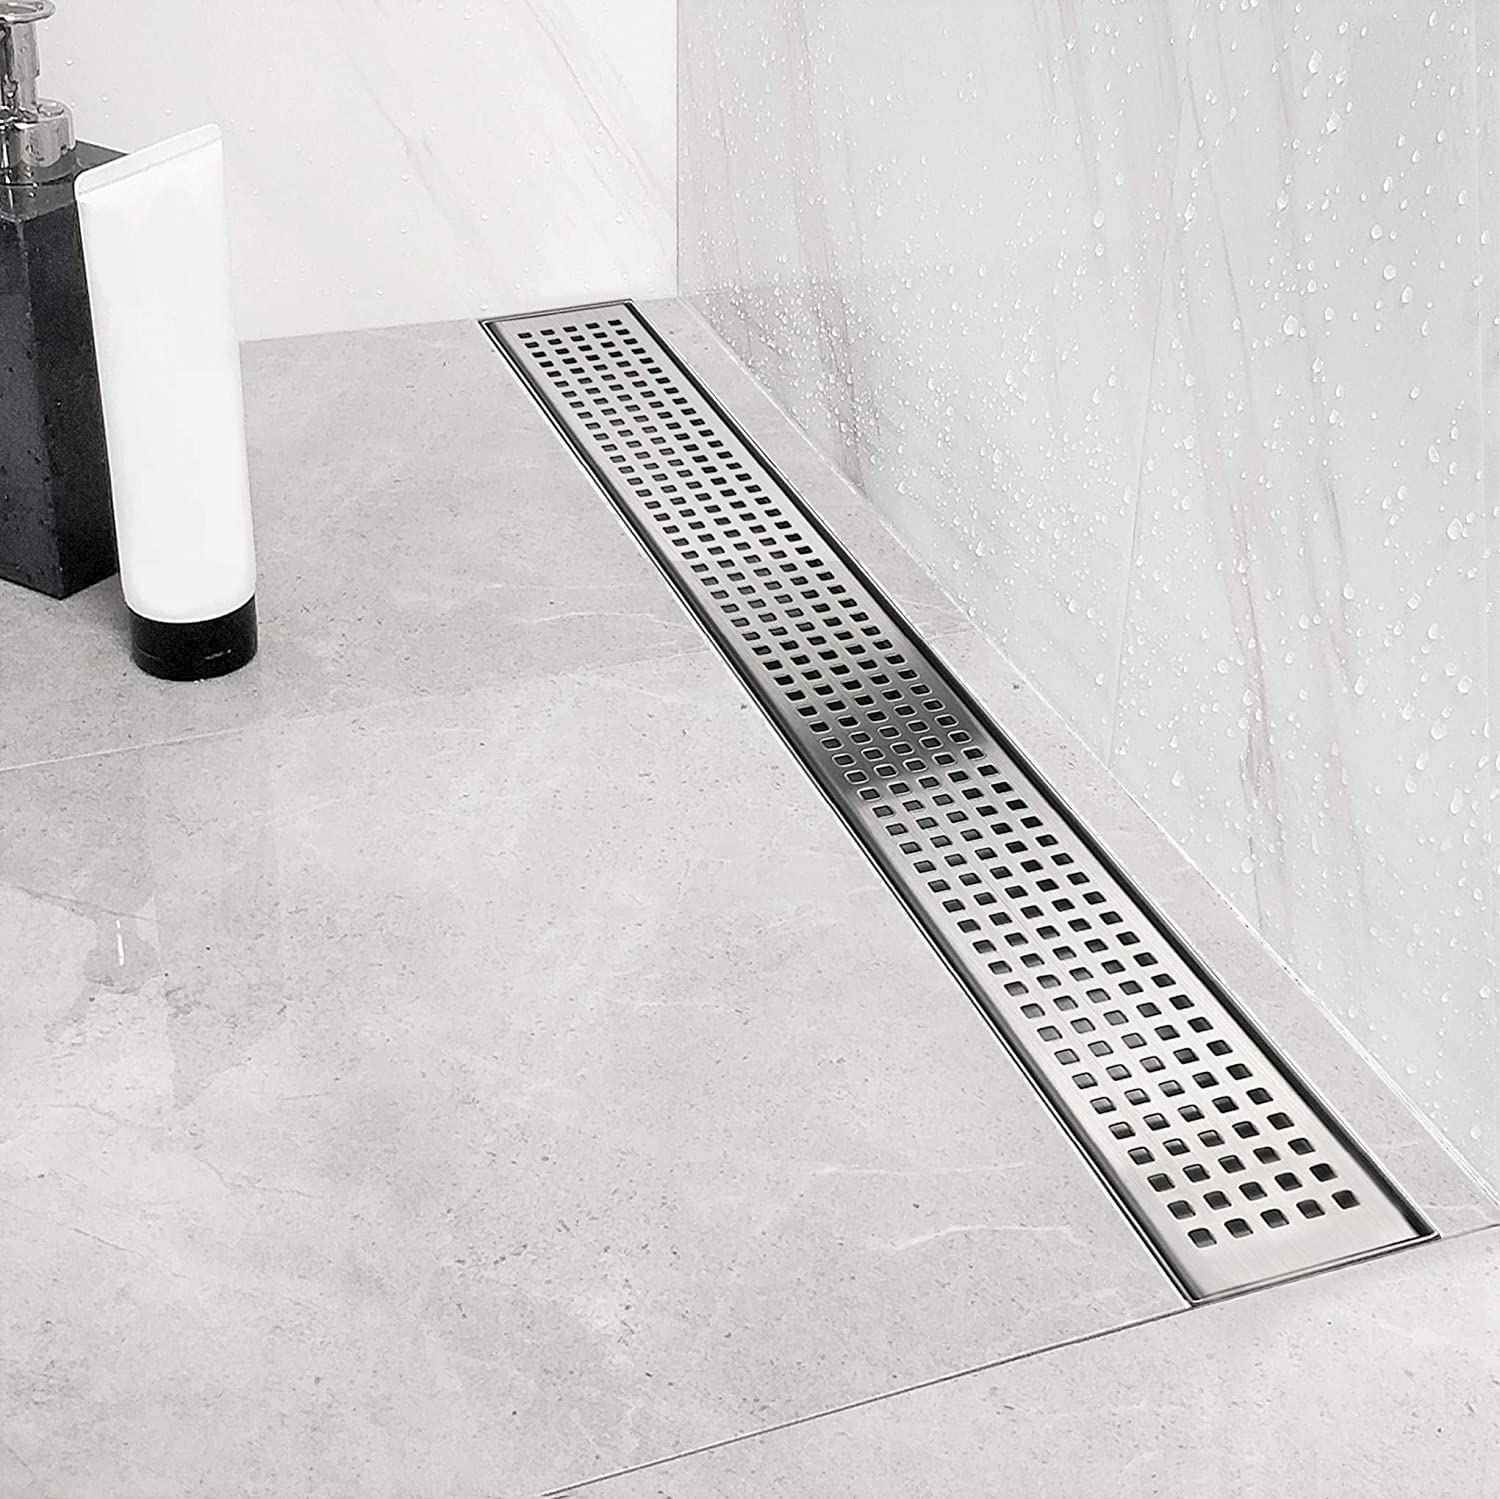 Neodrain 24 Inch Linear Shower Drain With Quadrato Pattern Grate Professional Brushed 304 Stainless Steel Rectangle Shower Floor Drain Manufacturer With Leveling Feet Hair Strainer Amazon Com